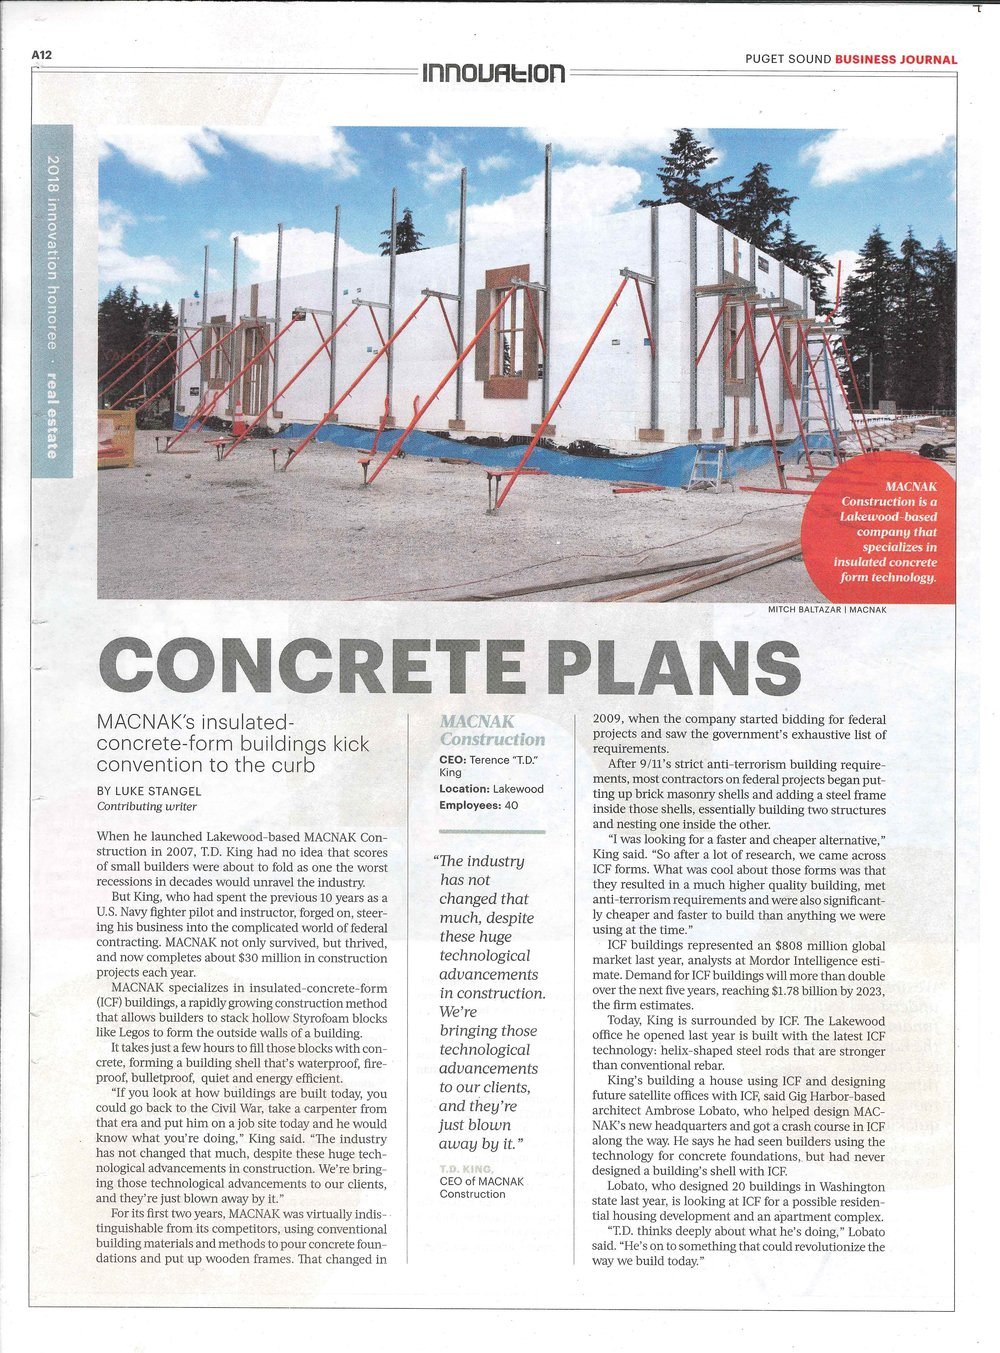 Thank you Puget Sound Business Journal for honoring MACNAK Construction with the 2018 Innovation Award in Real Estate/Construction! MACNAK is committed to bringing you energy efficient and technologically advanced custom homes at the same cost of traditionally built homes!